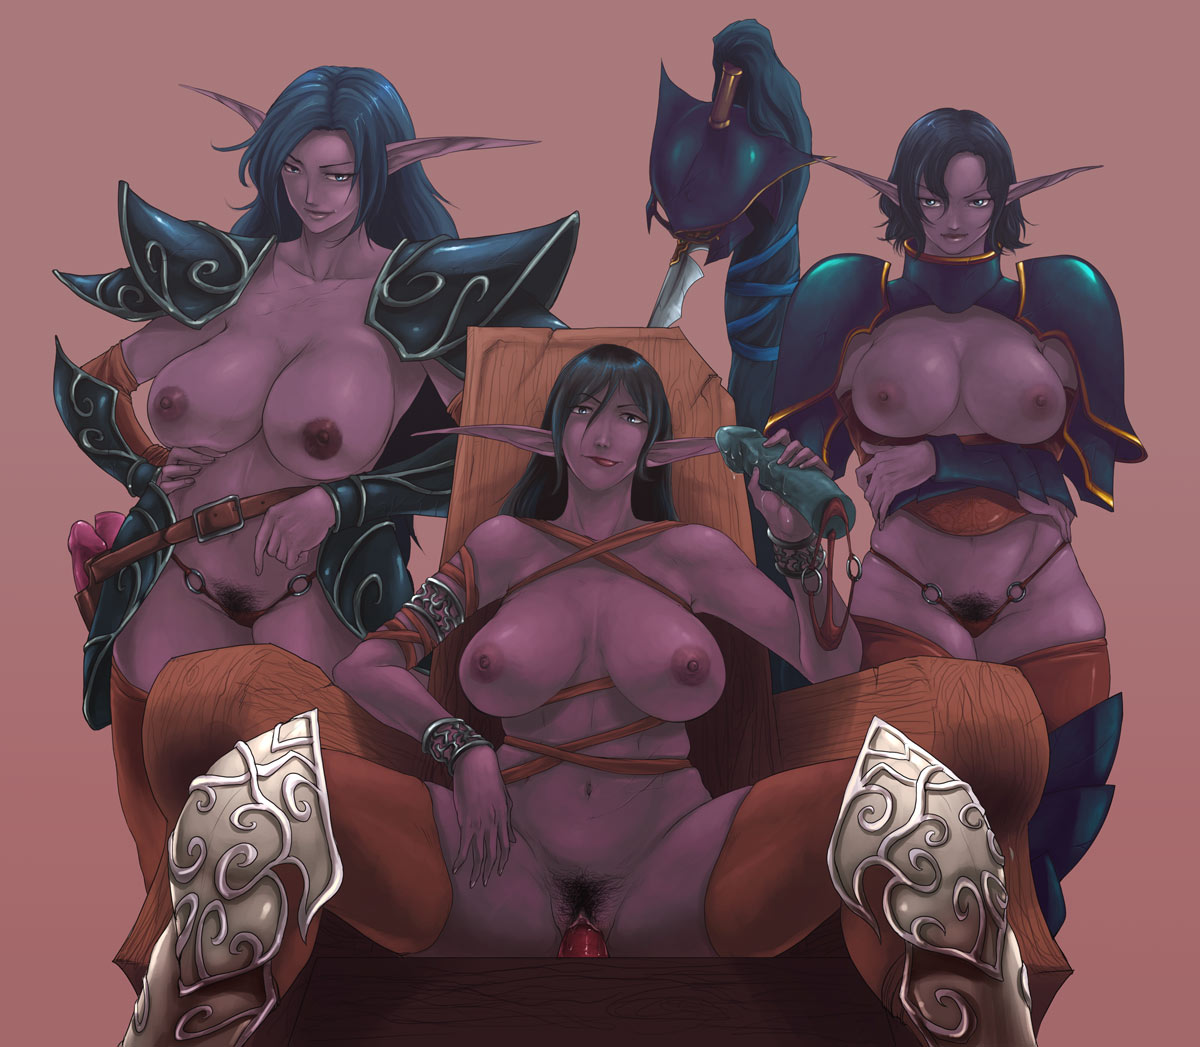 Night elf hentai pictures cartoon scenes